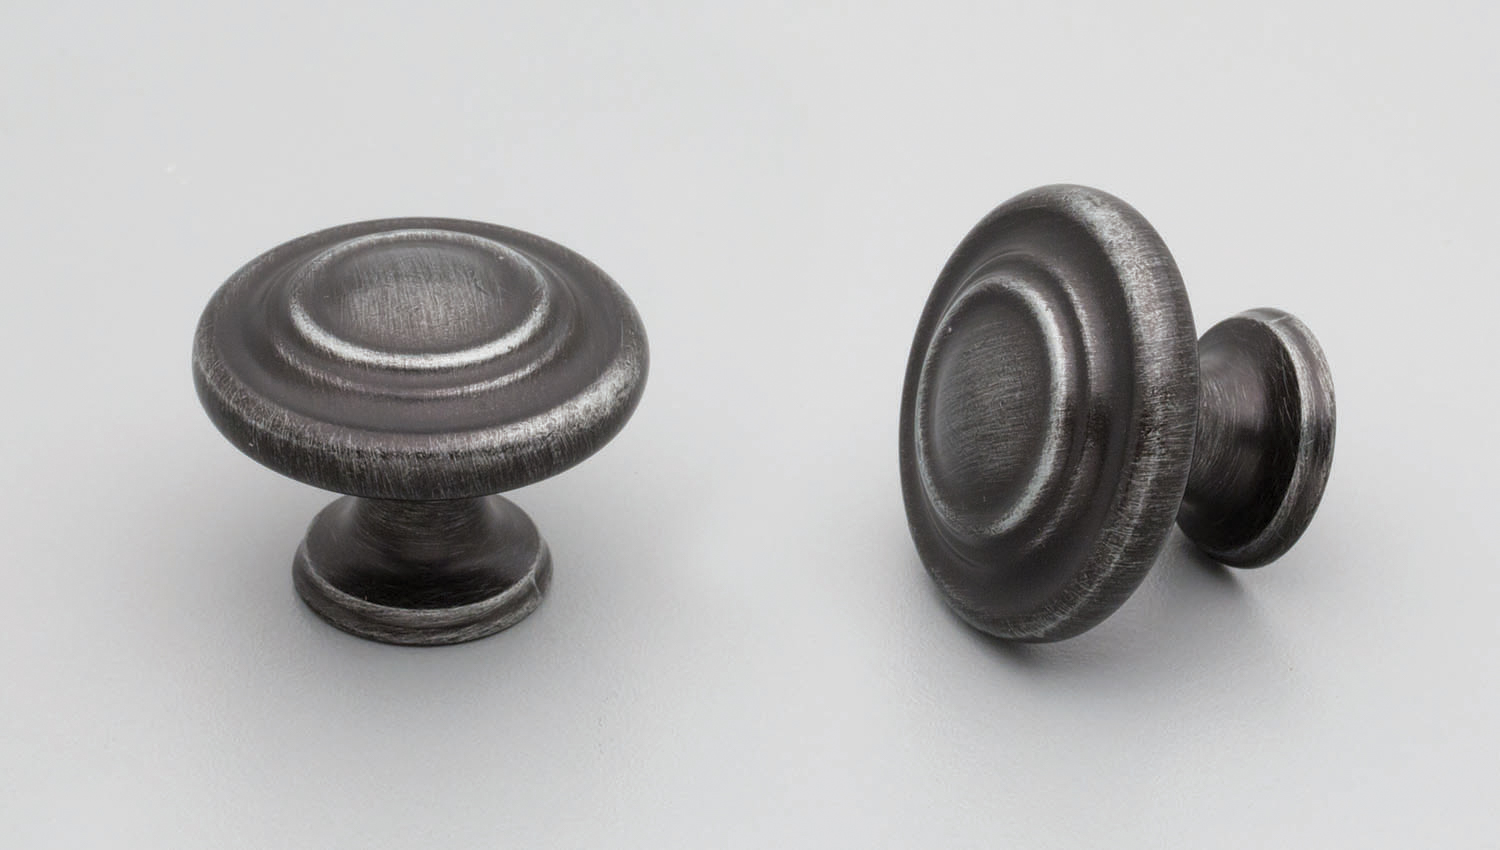 HT662 Hampton / Shaker round knob button centre for kitchen,bedroom,furniture colours Antique Black (ABK) mm, size overall 33 mm